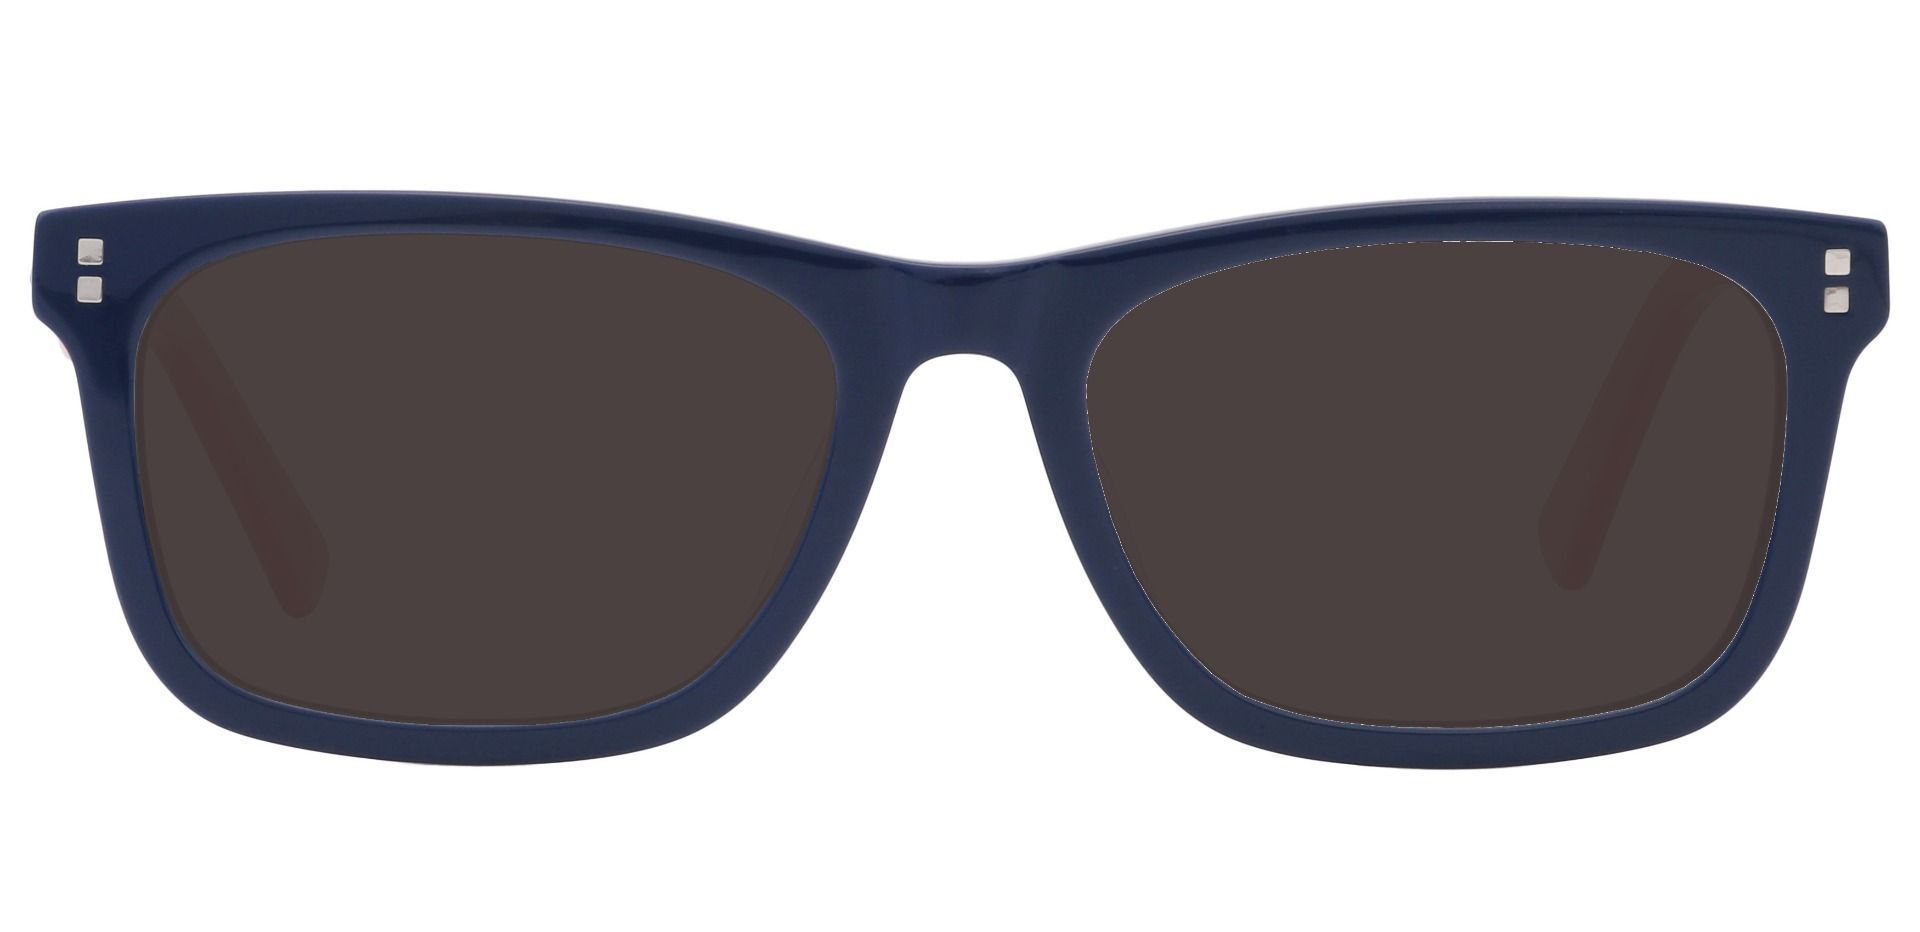 Newbury Rectangle Prescription Sunglasses - Blue Frame With Gray Lenses